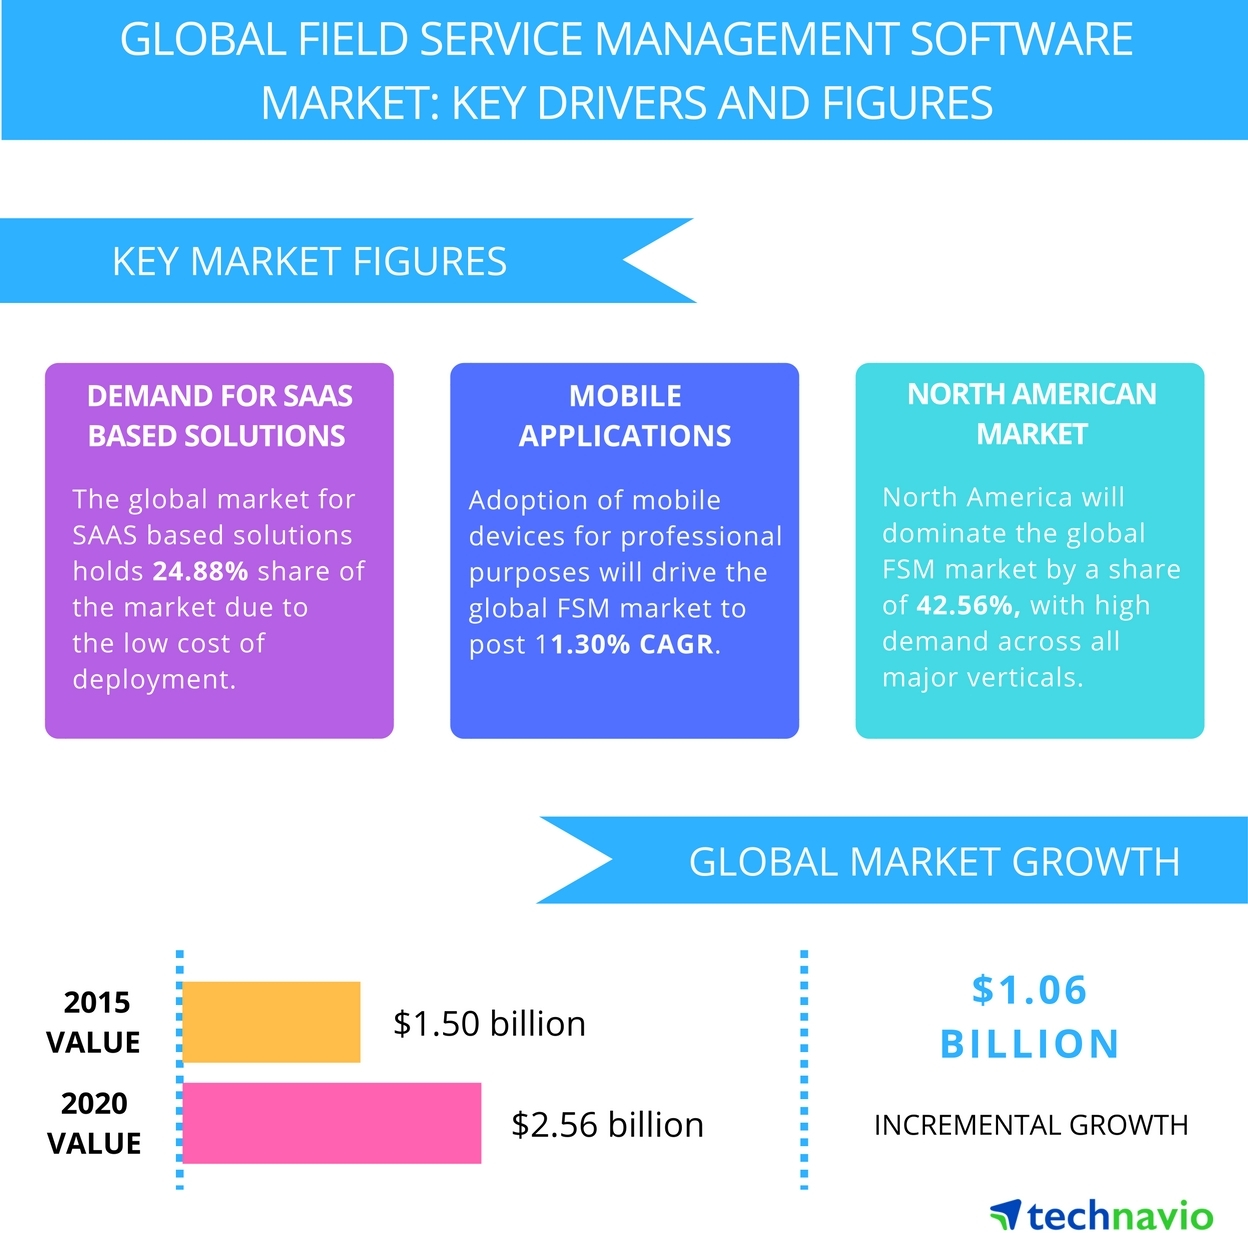 Top 3 Drivers for Field Service Management Software Market ...